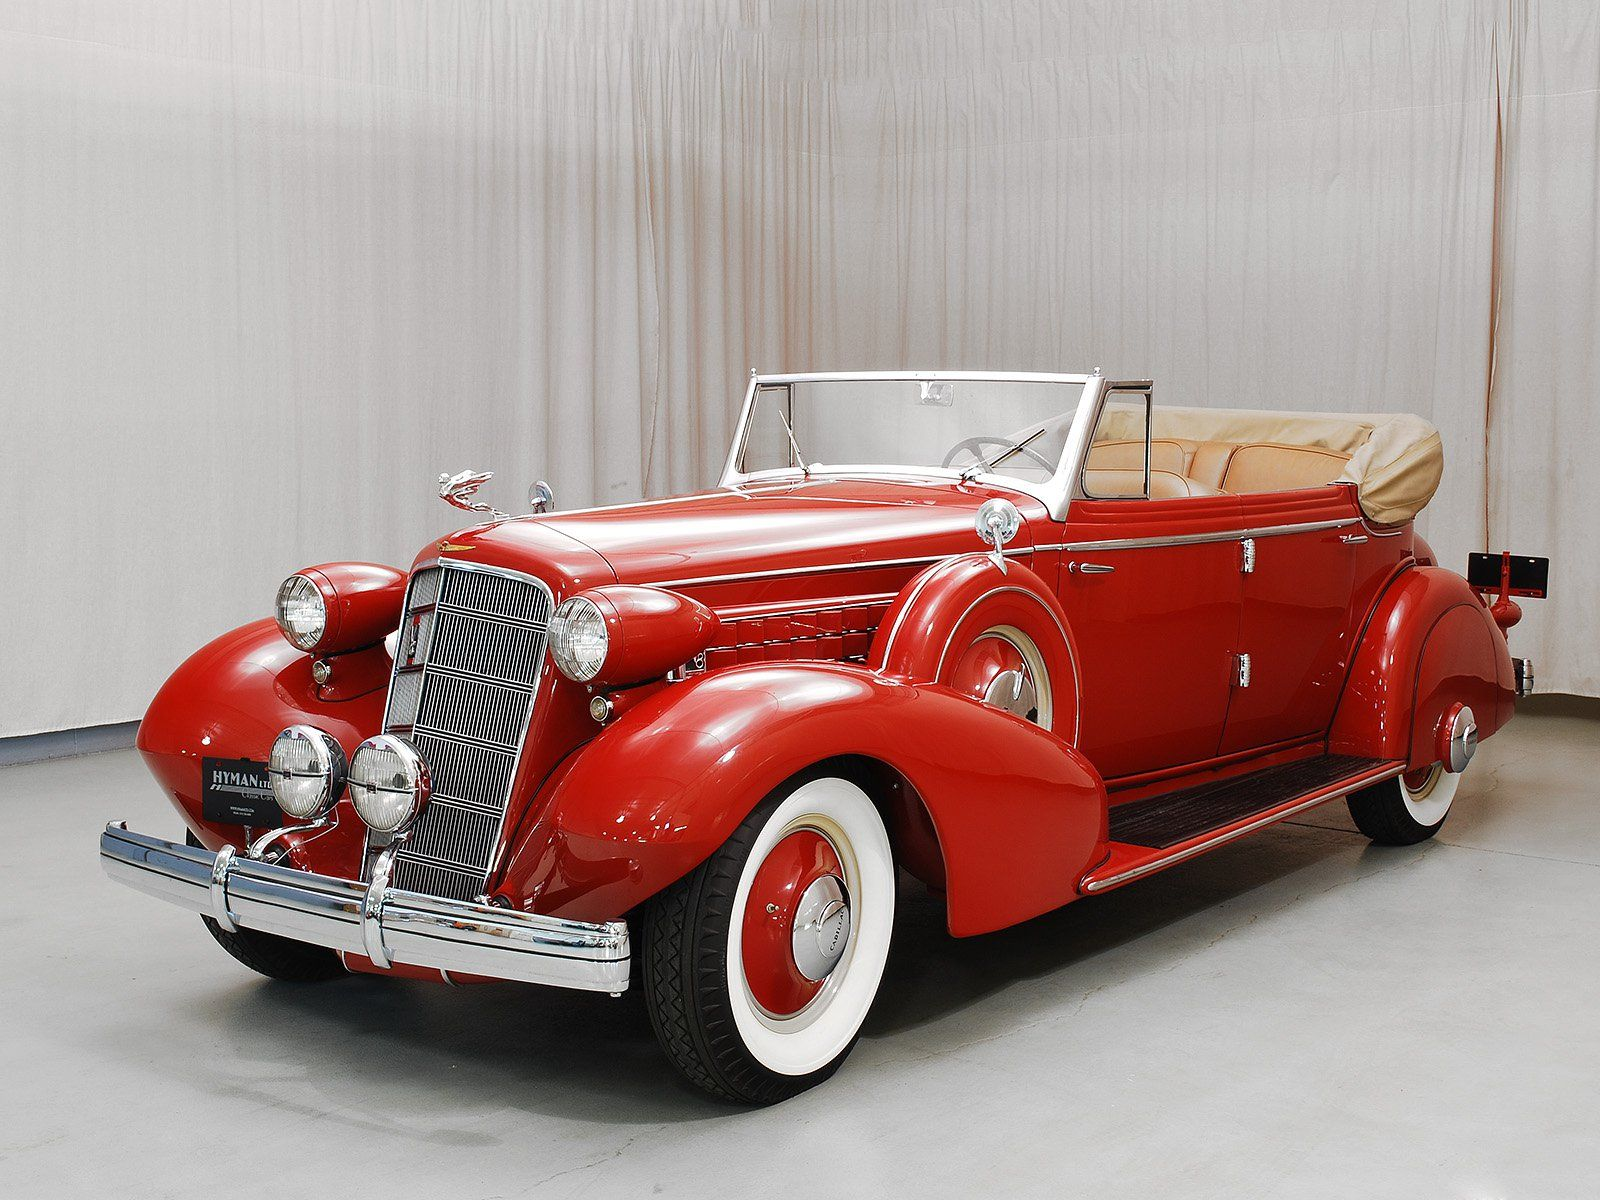 1935 Cadillac 355-D Convertible Sedan - Hyman Ltd. Classic Cars ...